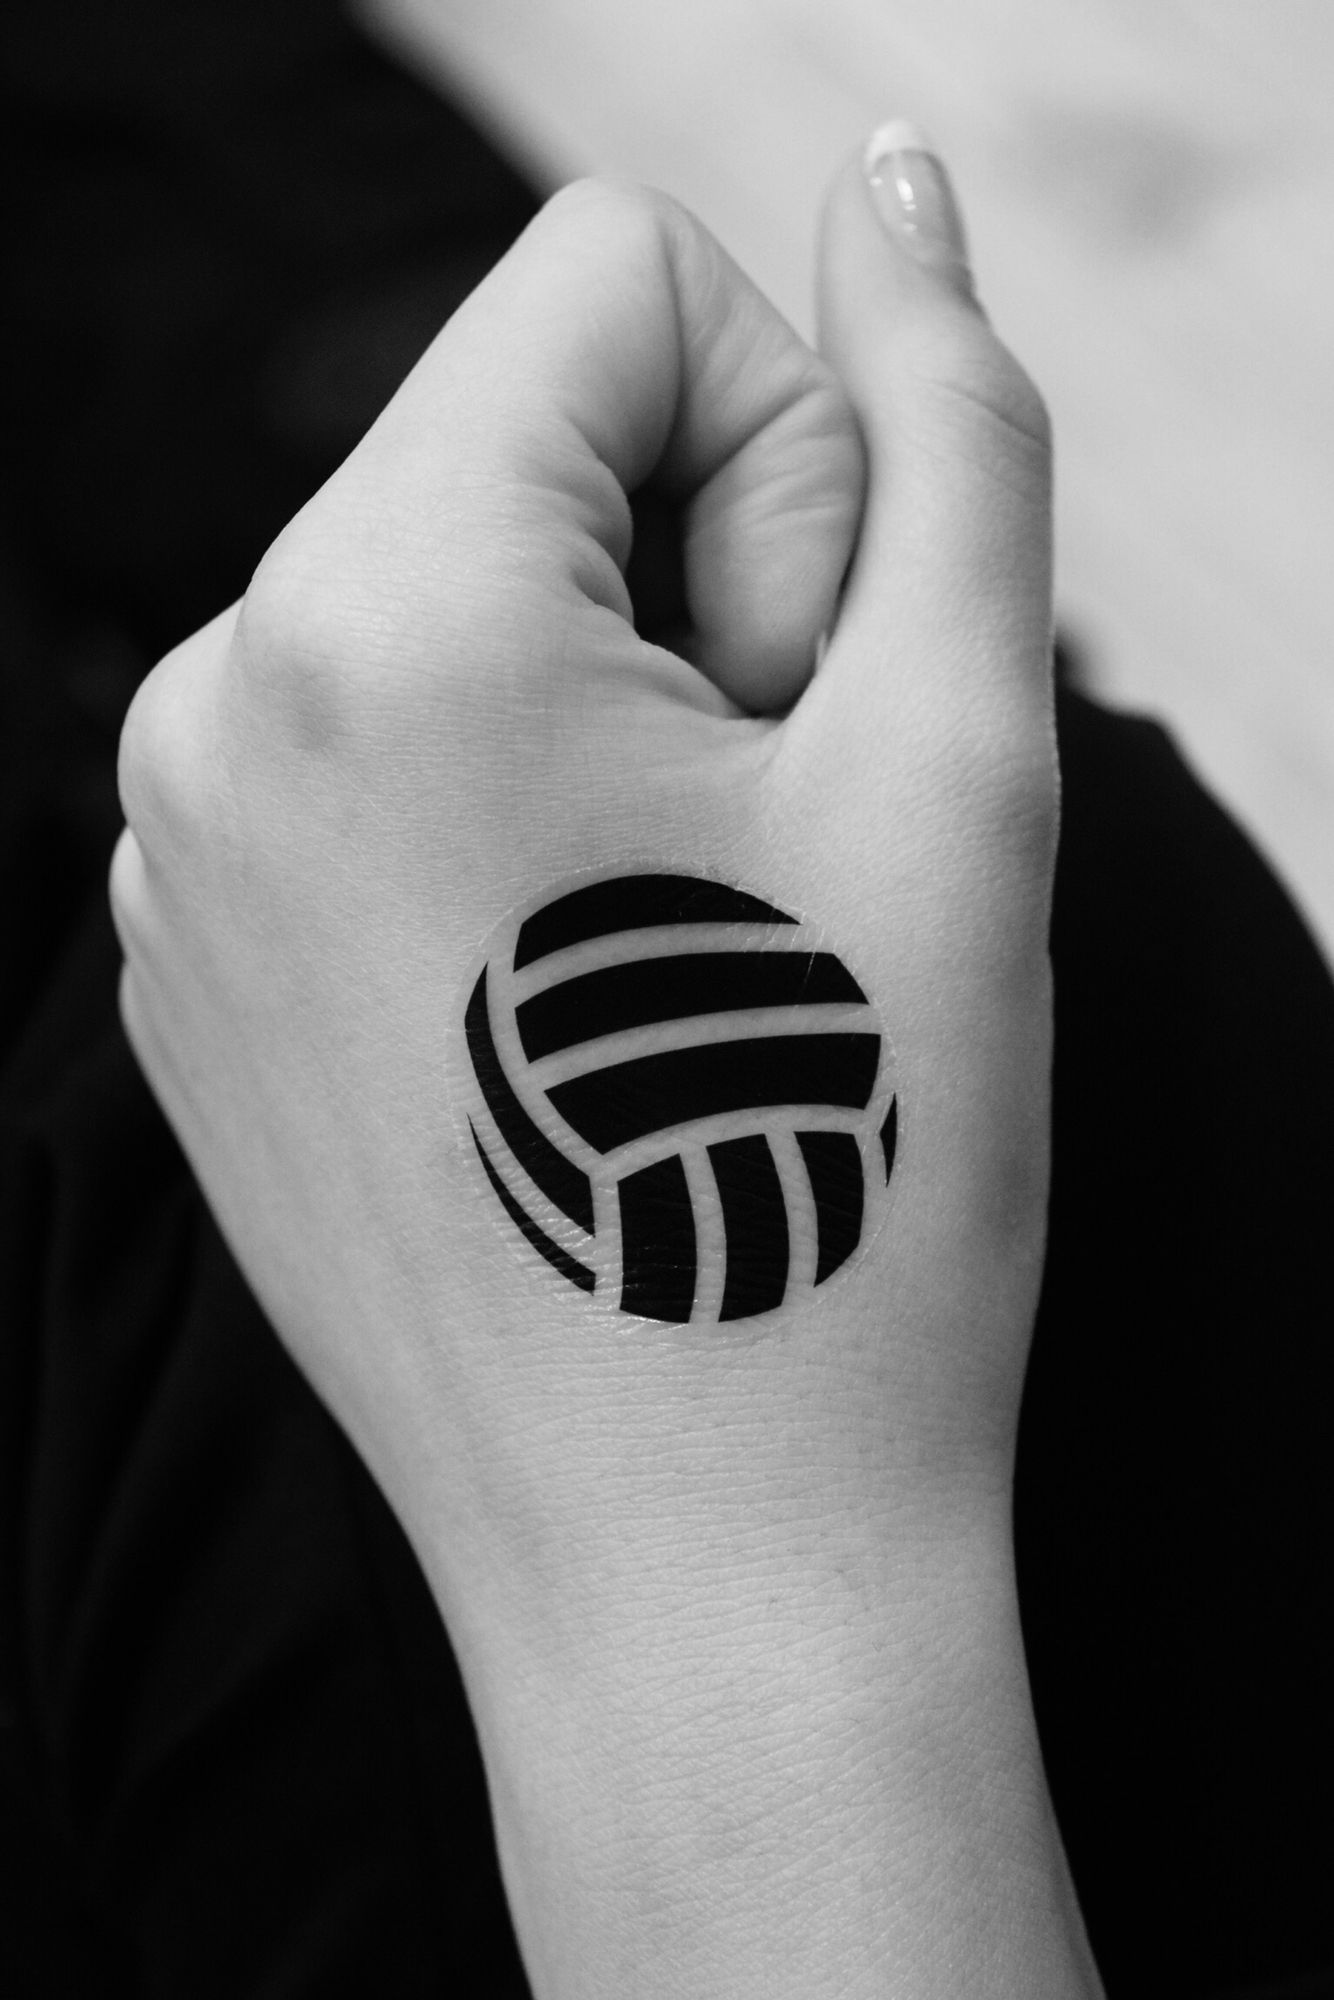 Temp Volleyball Tattoo That I Made For The Team Tatuajes De Voleibol Voleibol Voley